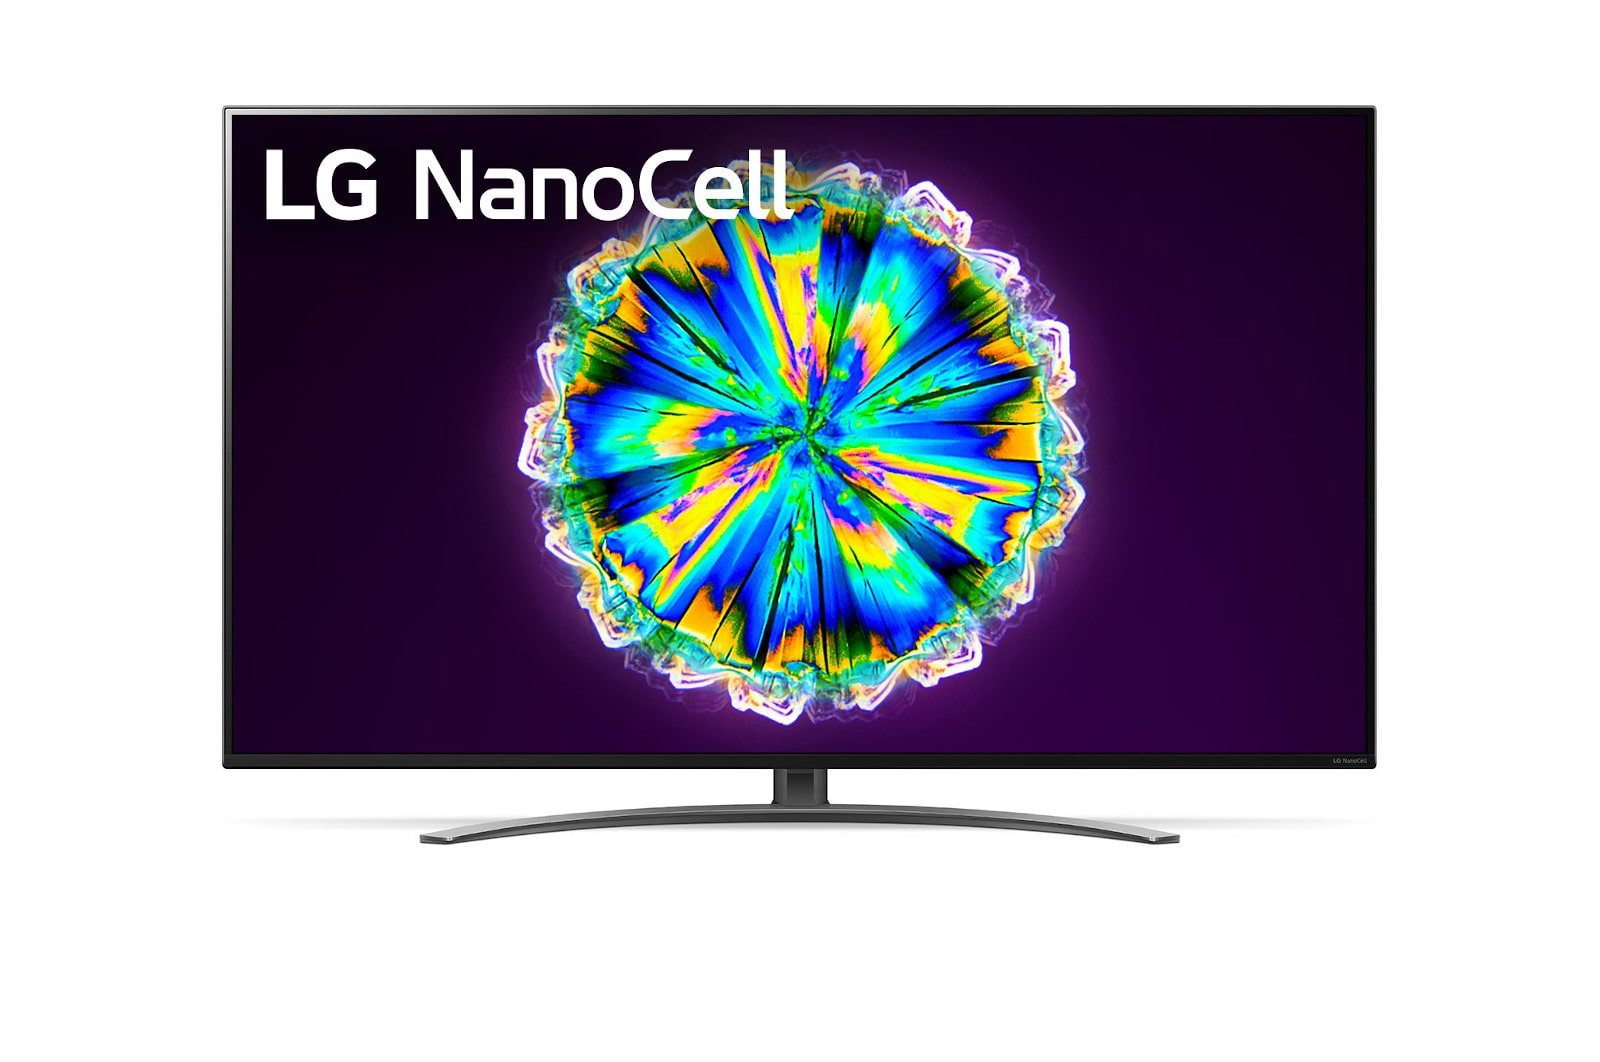 "LG NanoCell NANO86 65NANO866NA TV 165,1 cm (65"") 4K Ultra HD Smart TV Wifi Pantalla flexible Negro, Acero inoxidable"